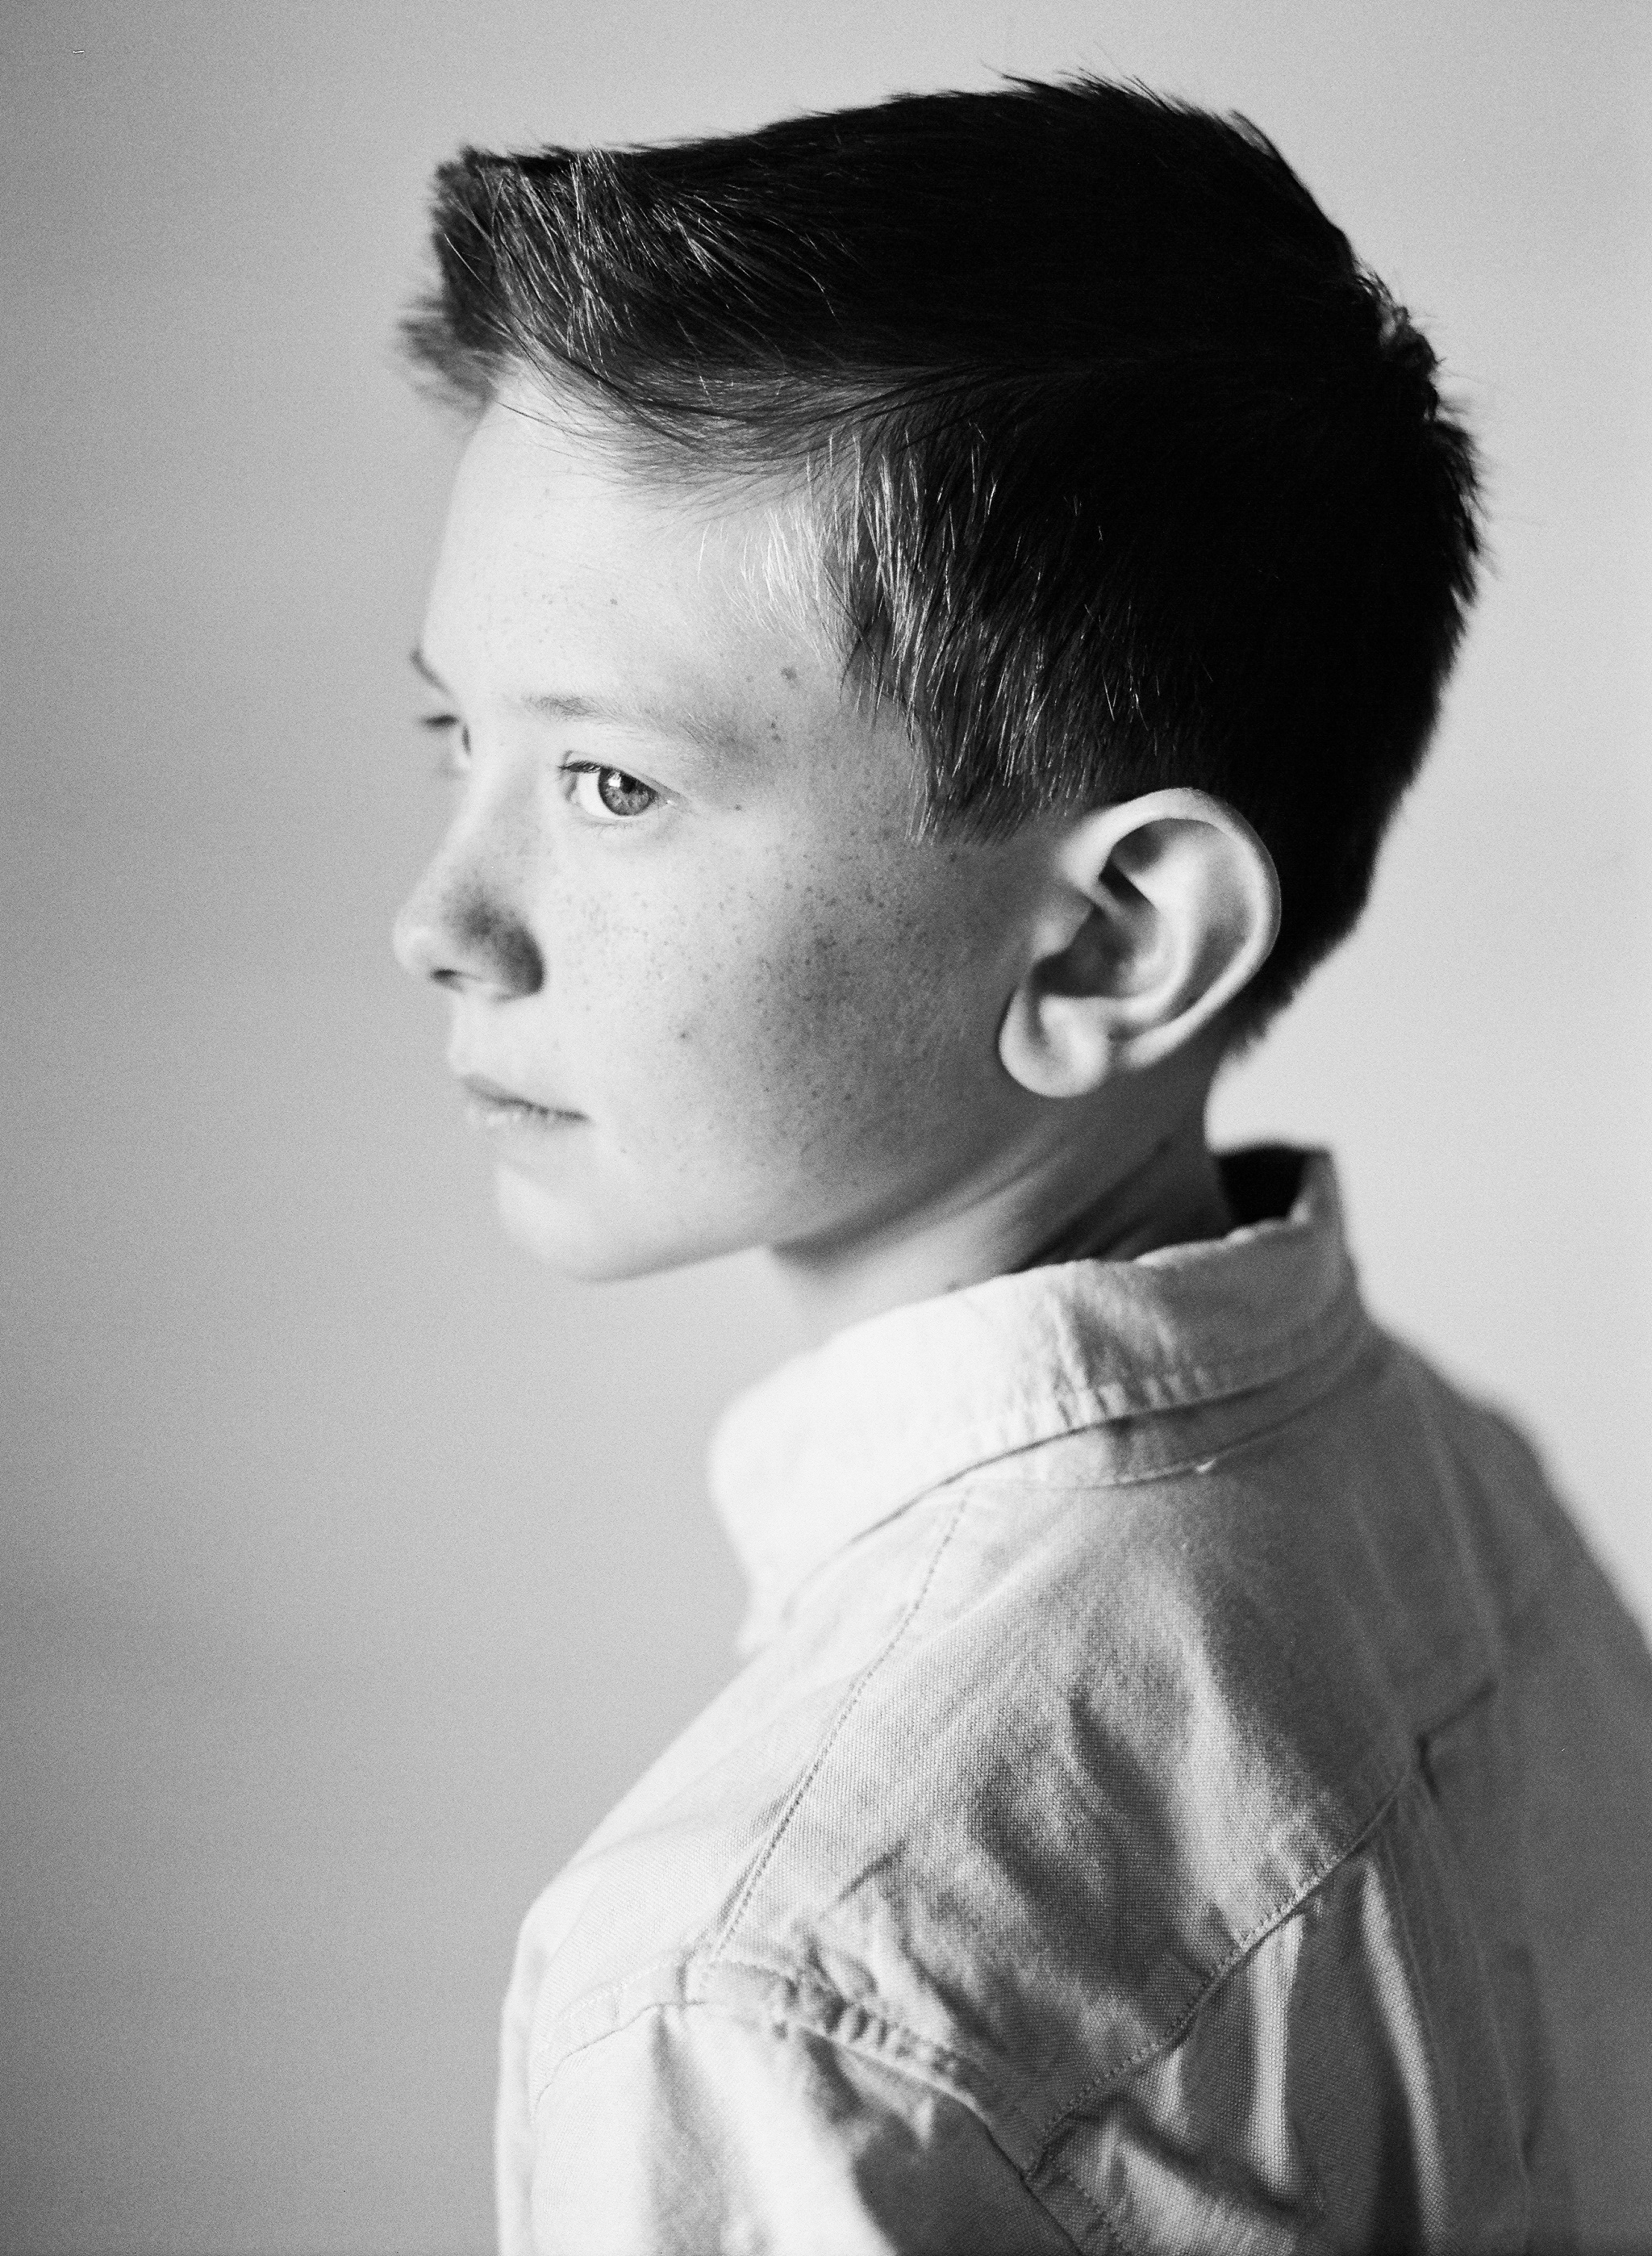 nashville-franklin-blackandwhite-childrens-portraiture-21.JPG